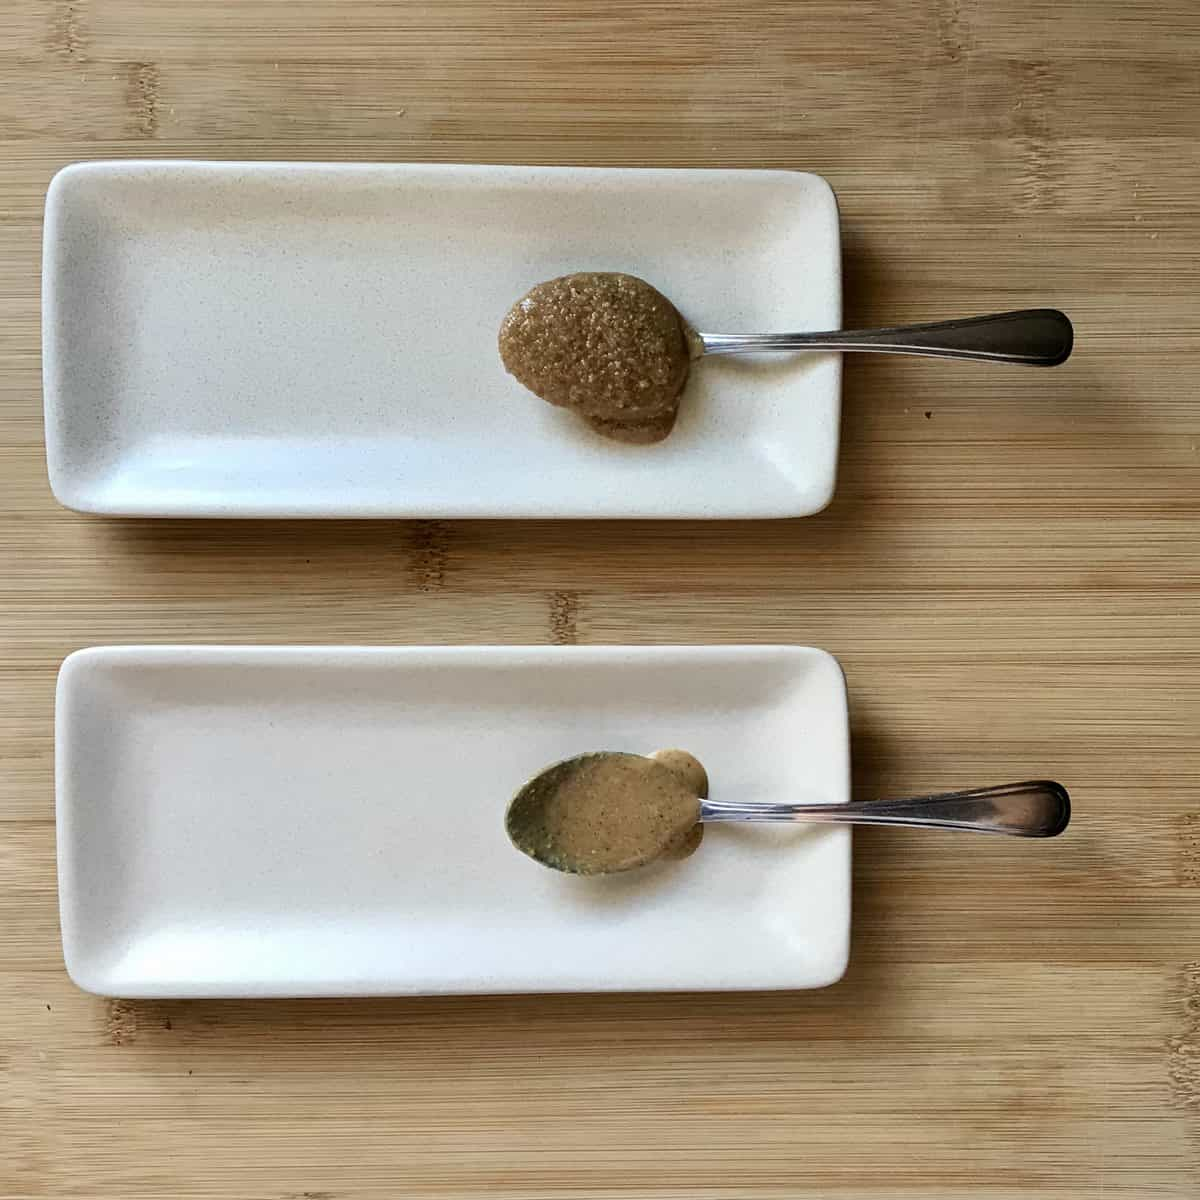 Spoonful of nut butter on a white plate.